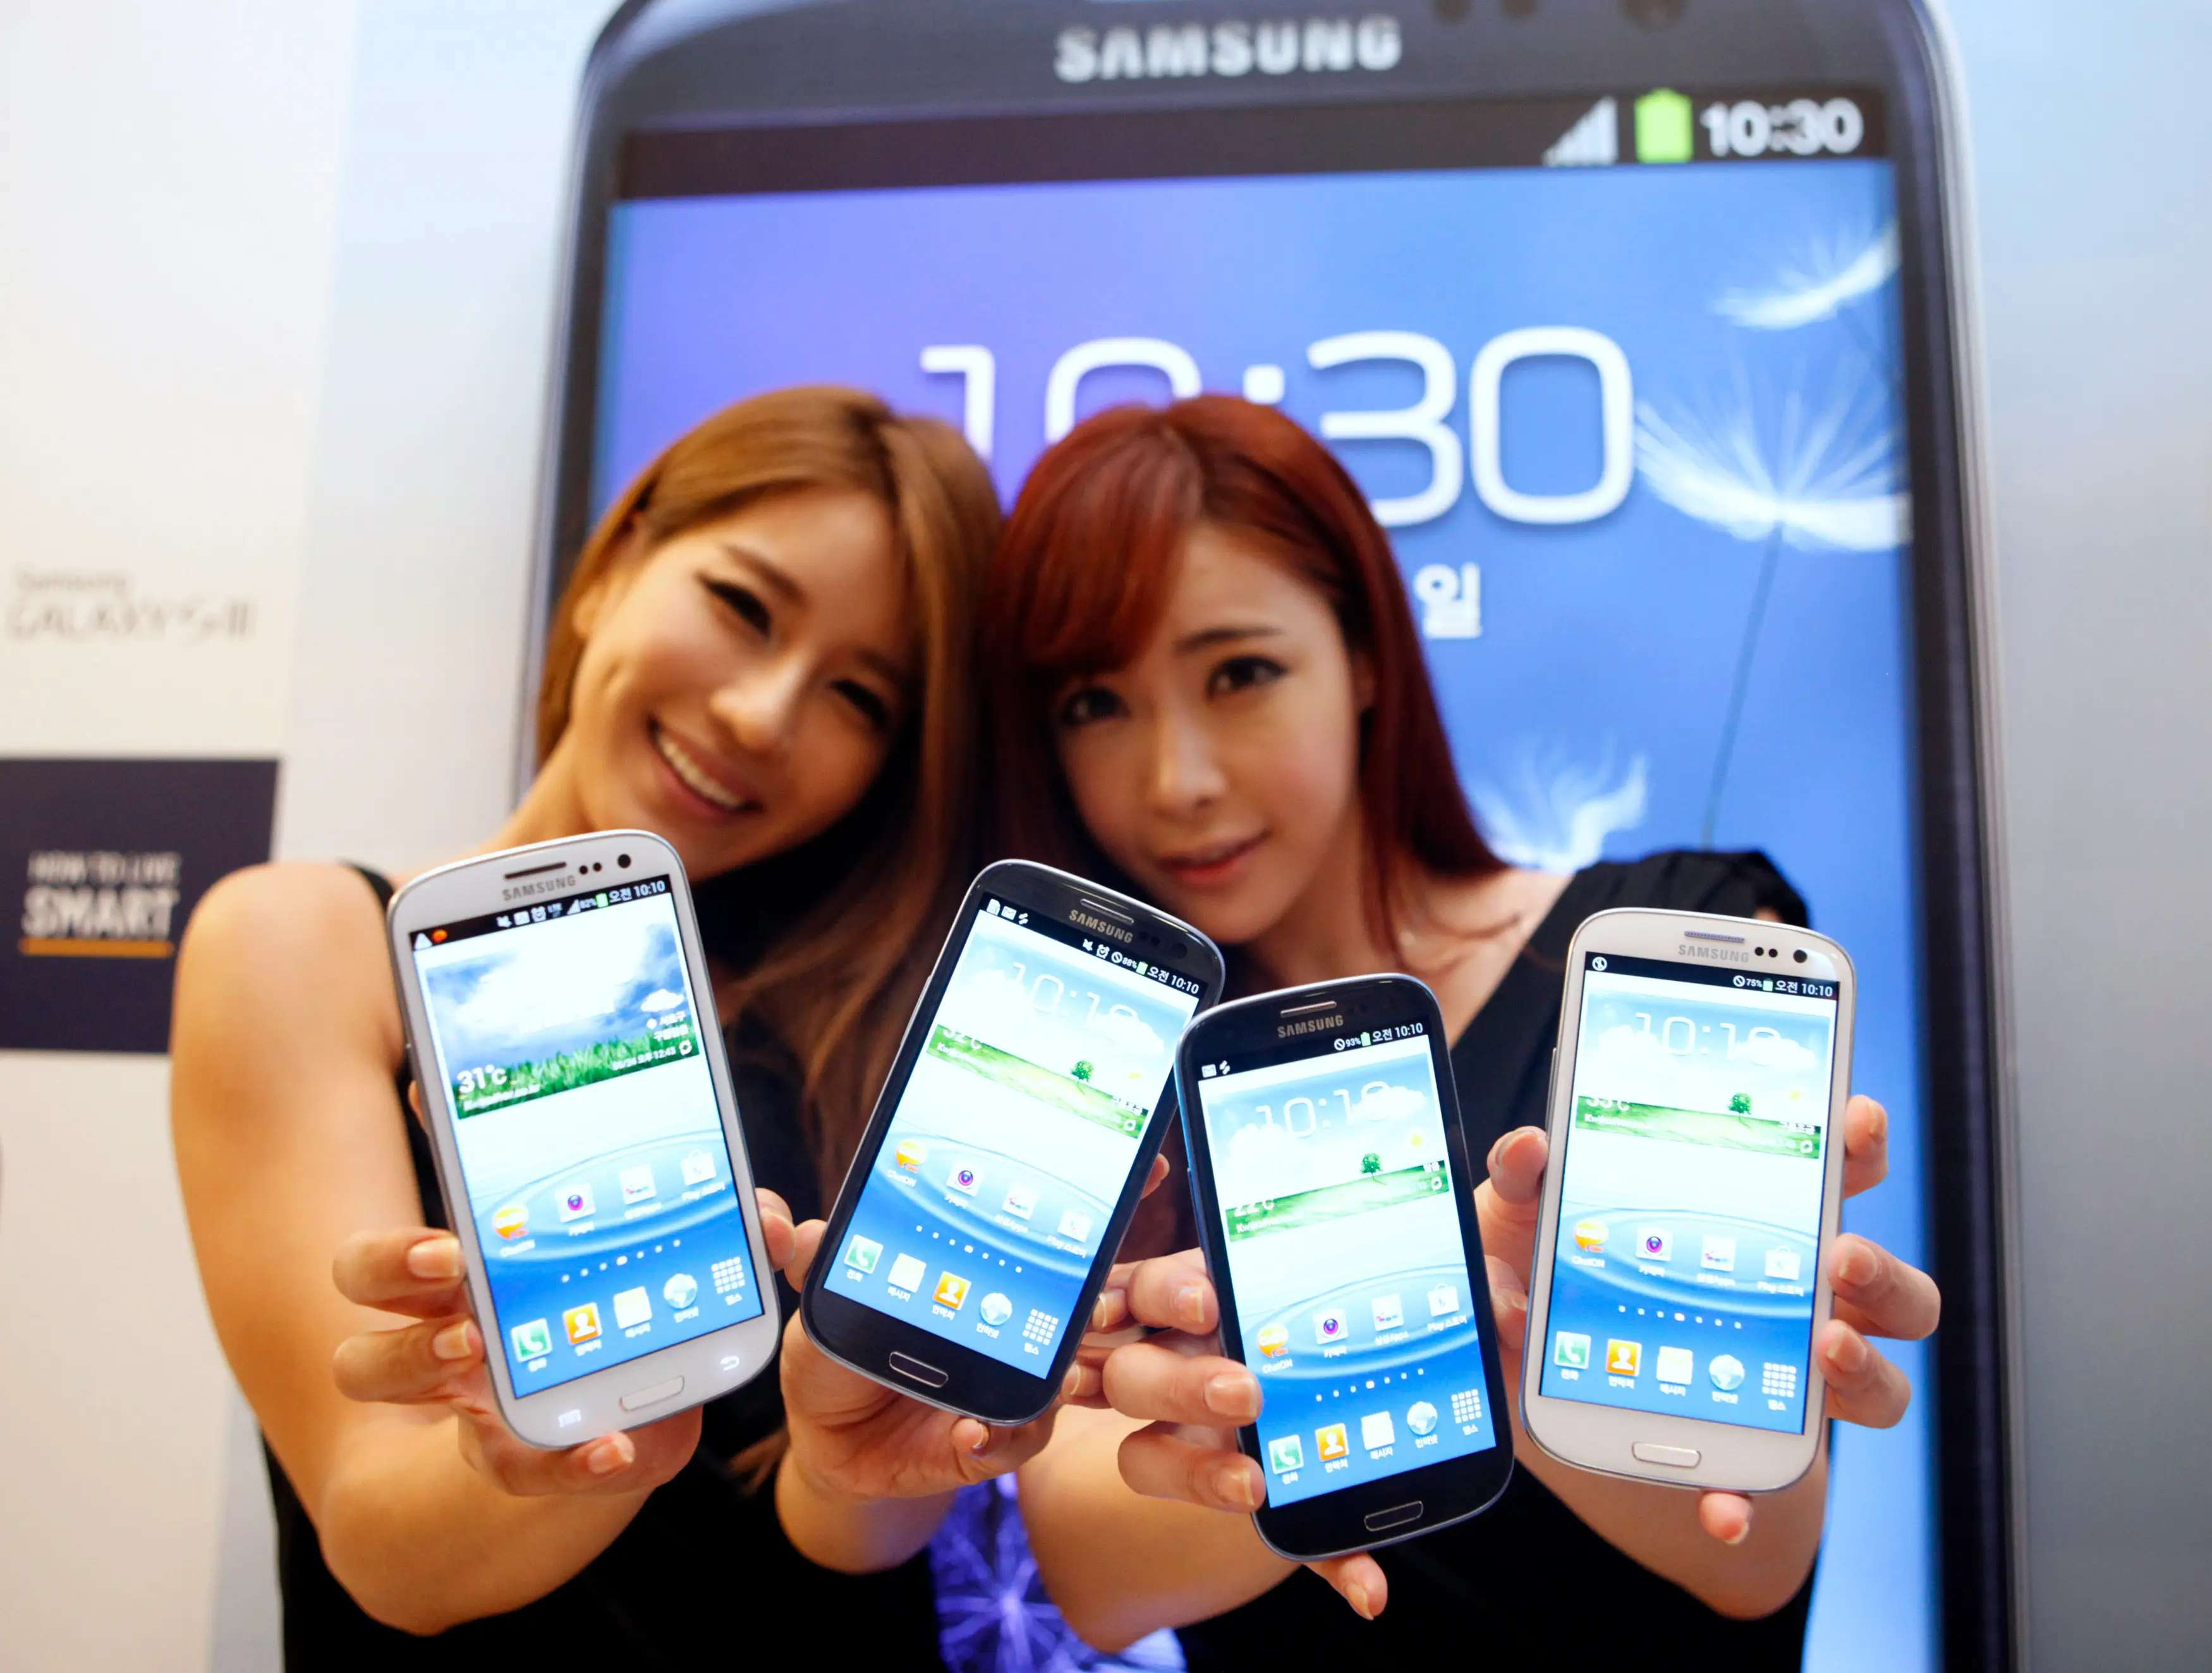 2012 saw the true rise of Samsung as the top Android phone maker on the planet. It released the Galaxy S III, which became the top-selling phone behind the iPhone.